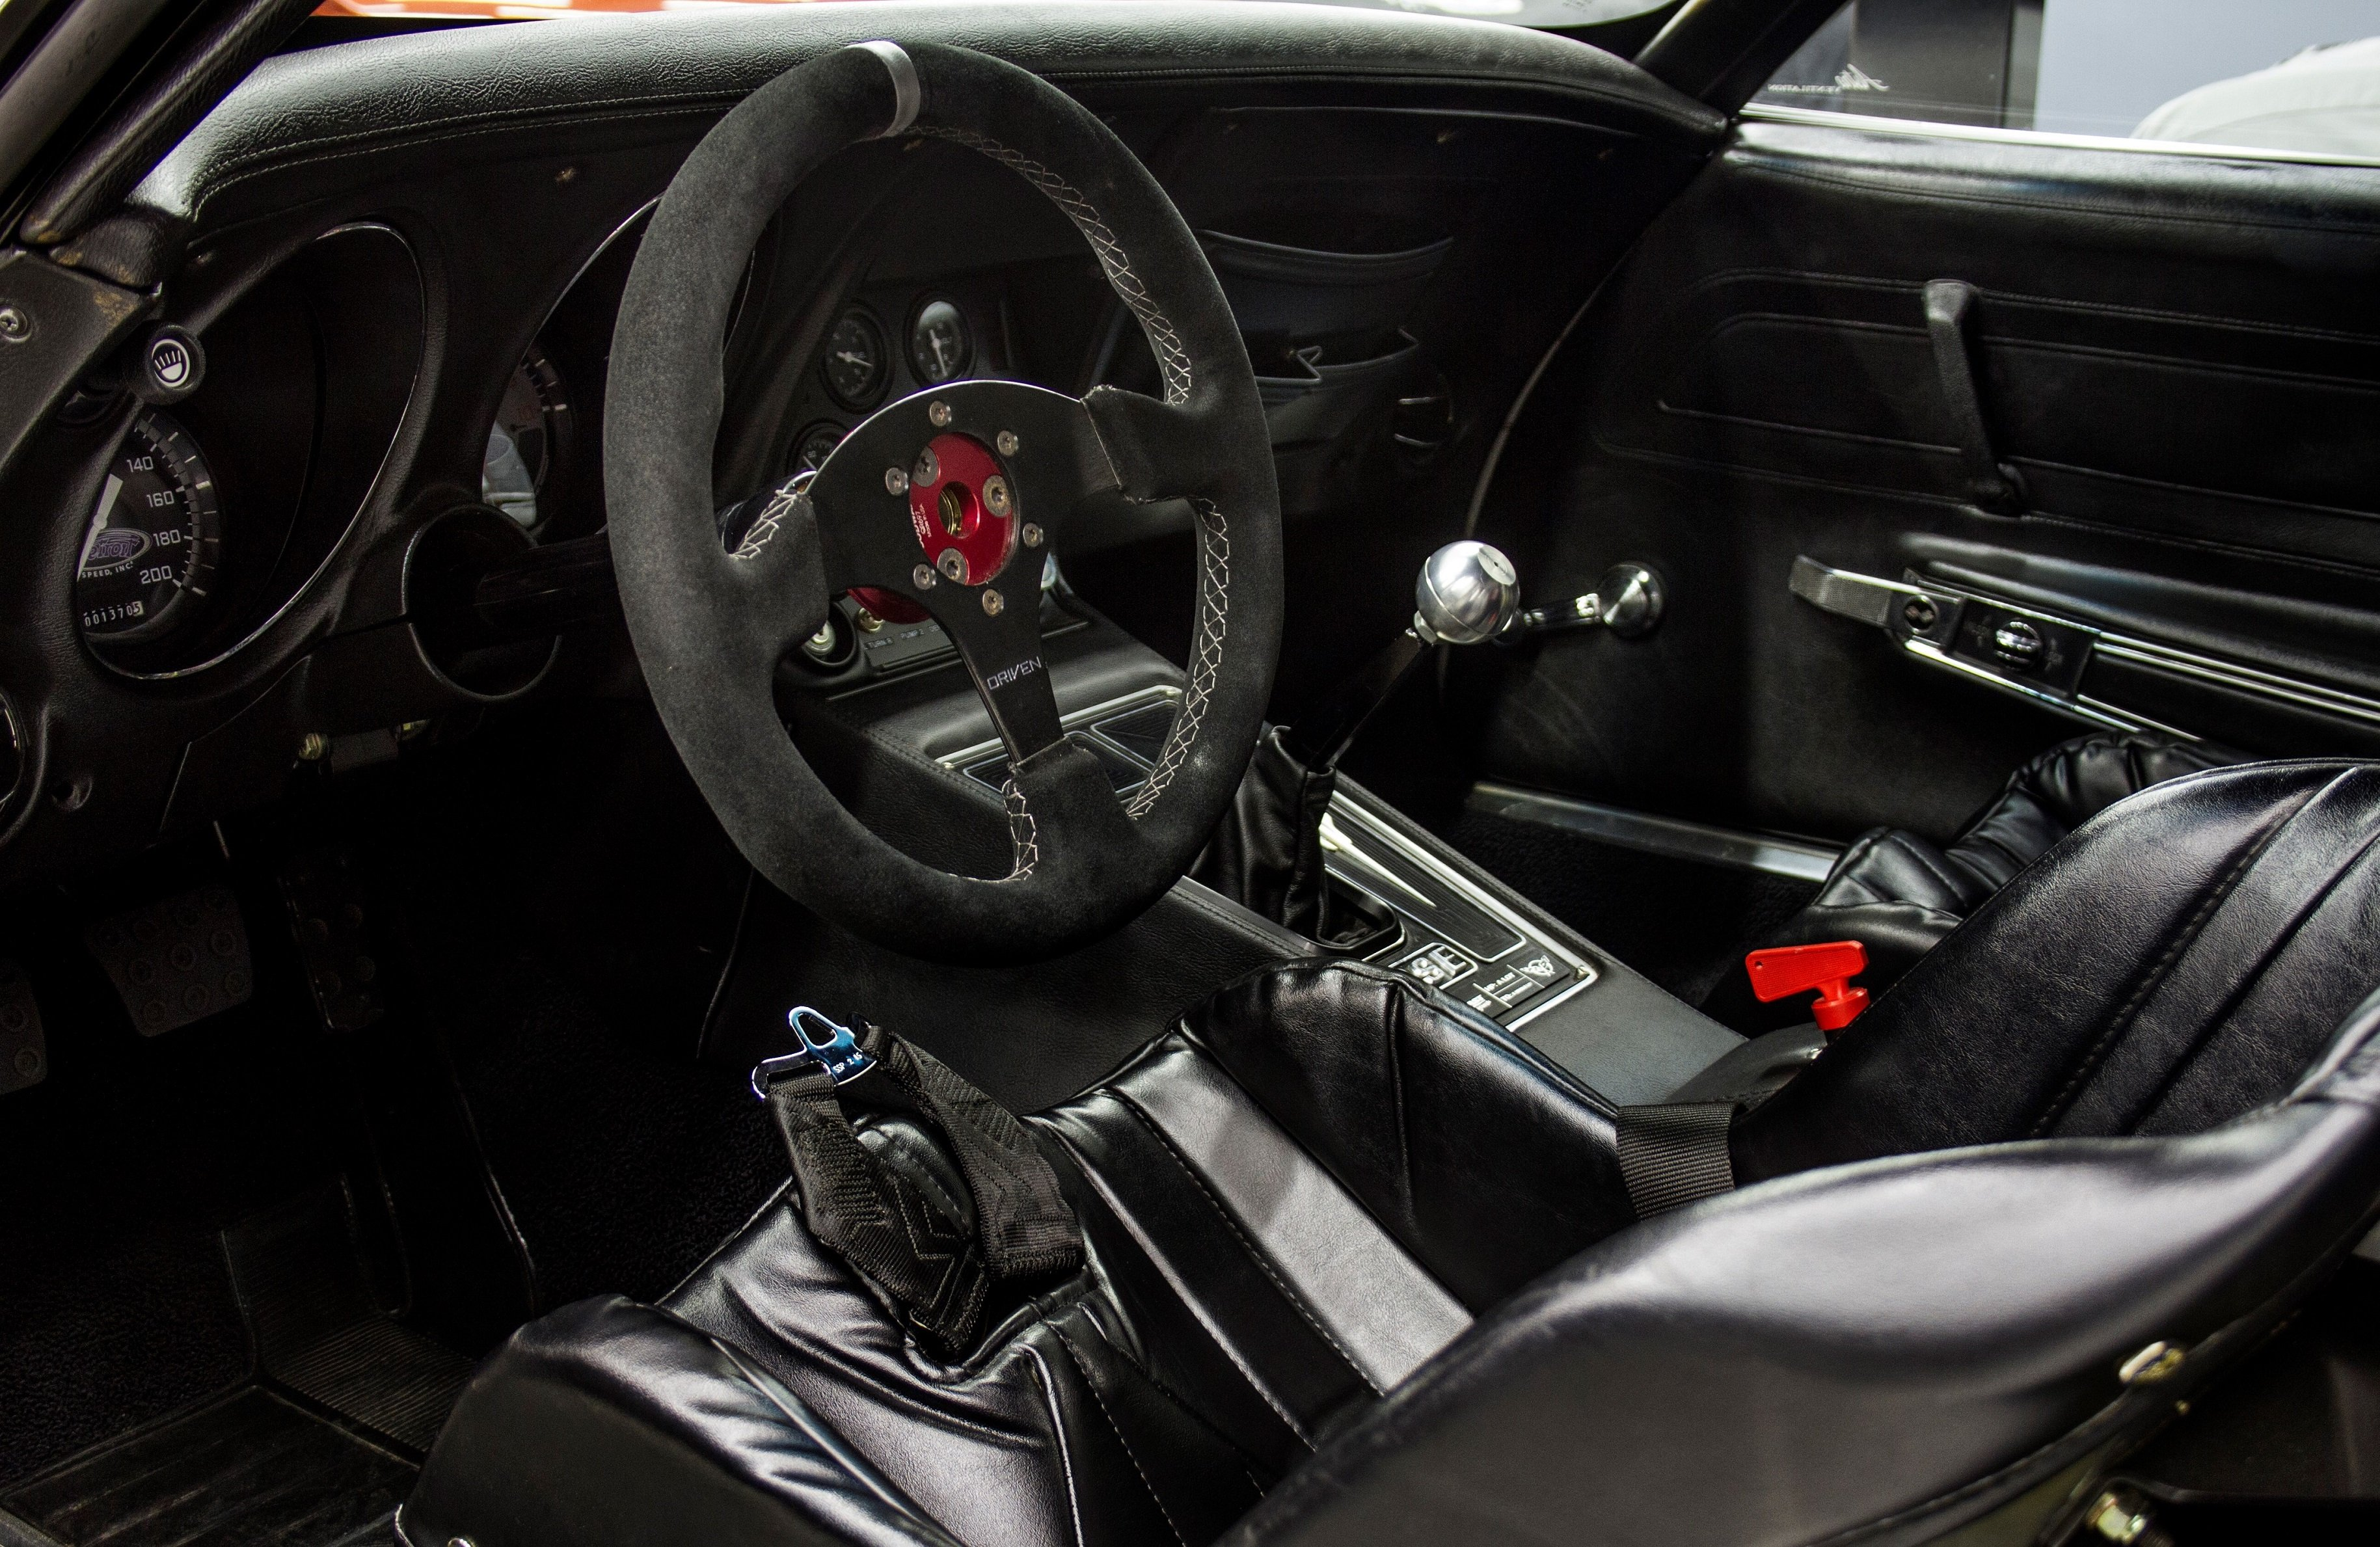 Detroit Speed Takes a C3 Corvette From a Craigslist Ad to